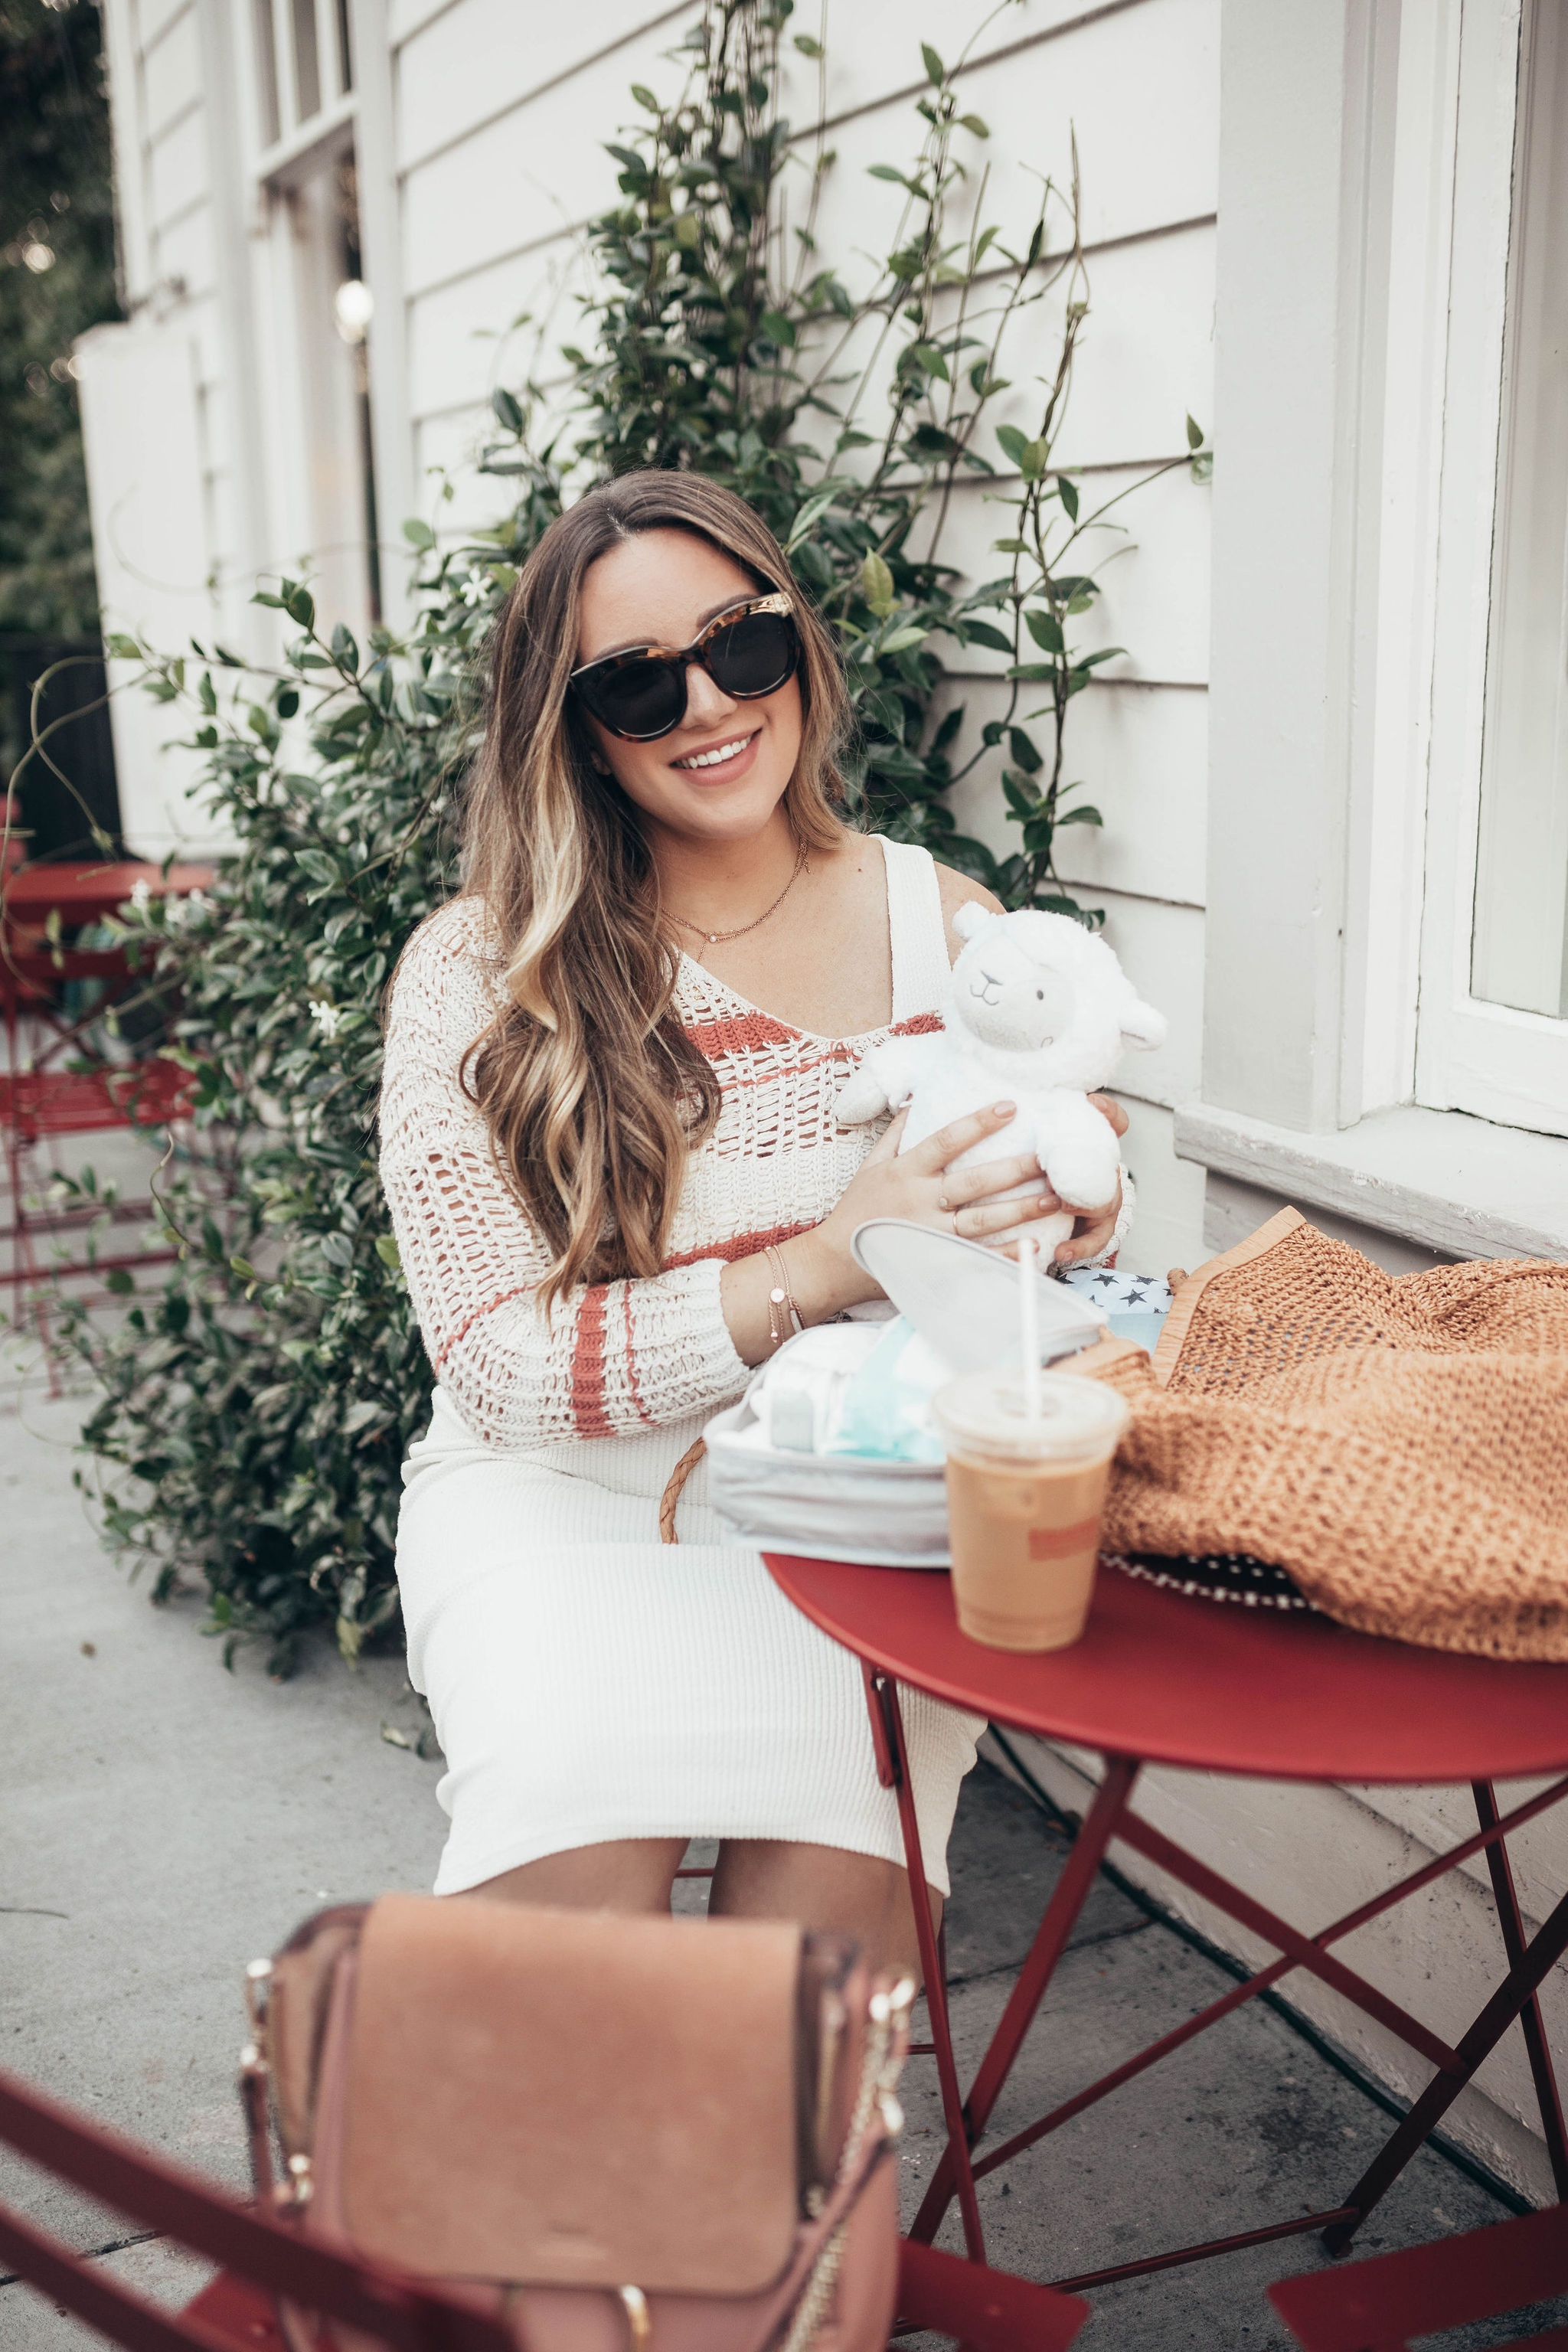 25 Bestseller Walmart Baby Products by popular San Francisco life and style blog, Just Add Glam: image of a woman sitting at a cafe table outside with an iced coffee, Walmart Mustela newborn arrival gift set, and other various Walmart baby products.